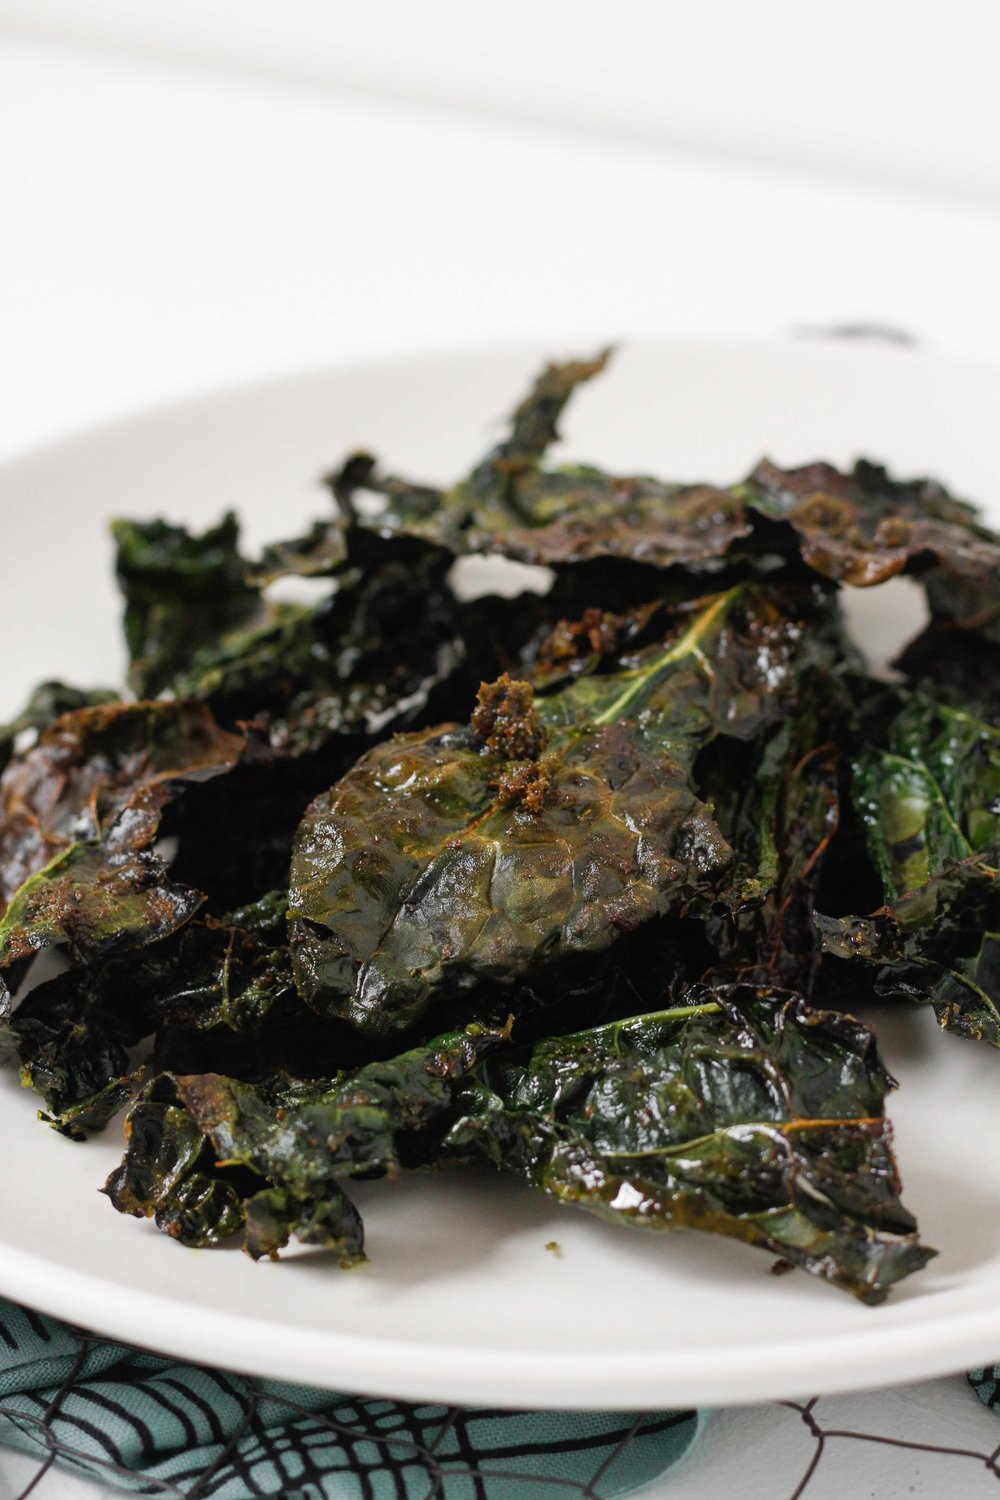 Pesto kale chips